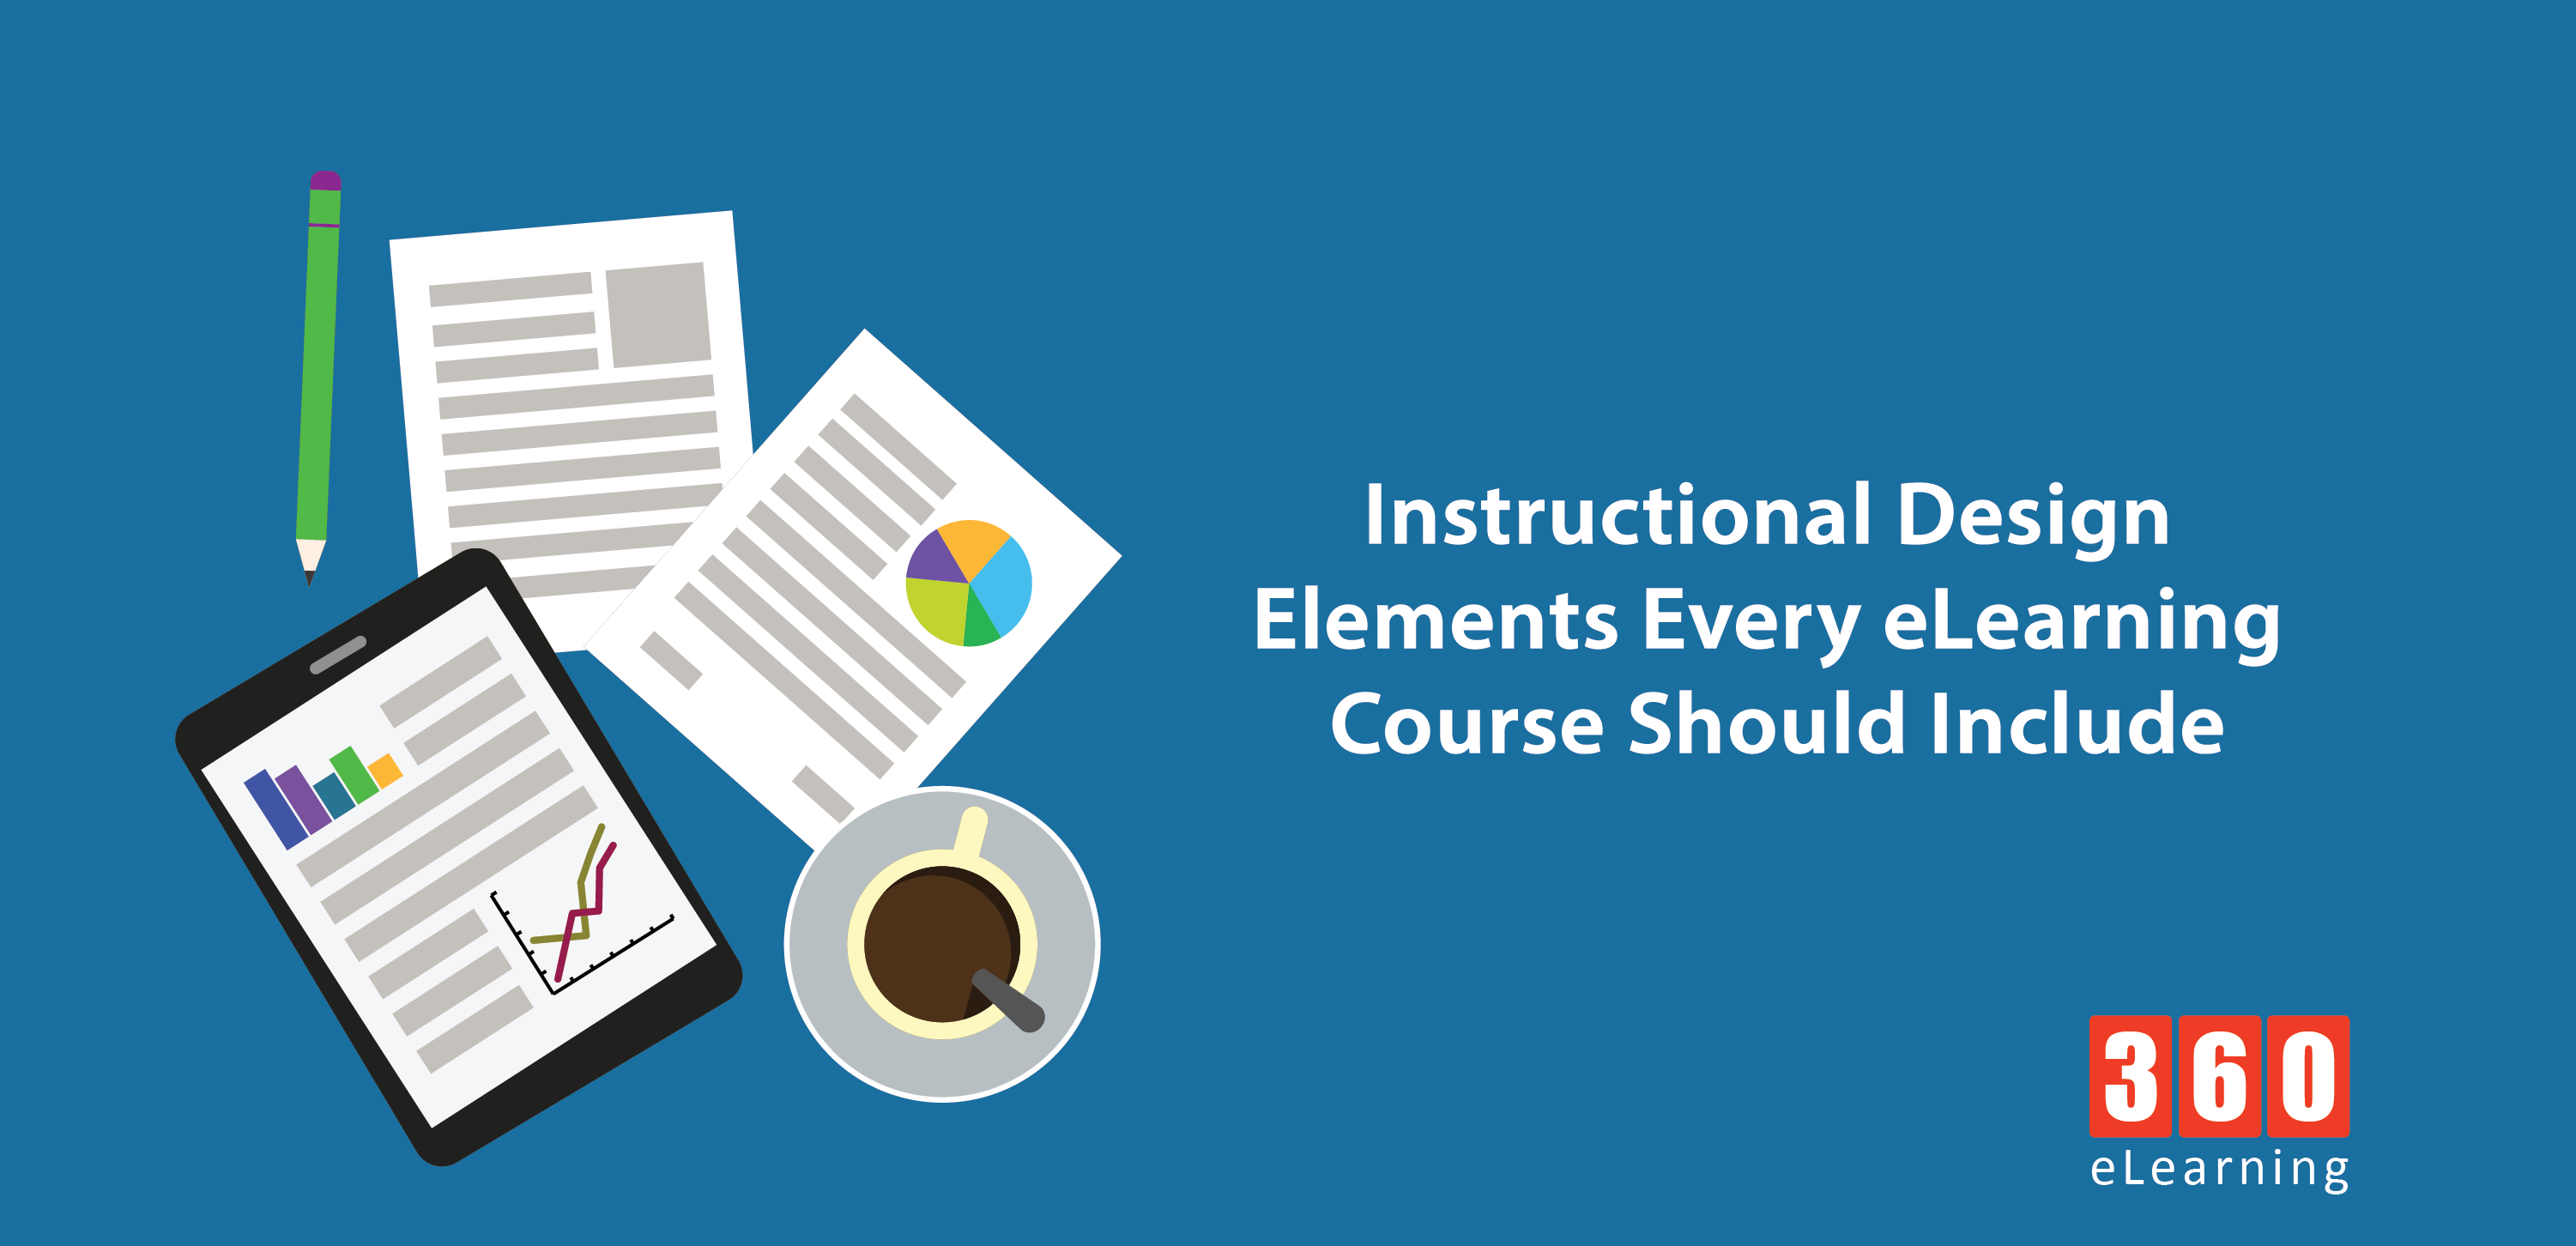 Instructional Design Elements Every Elearning Course Should Include 360elearning Blog